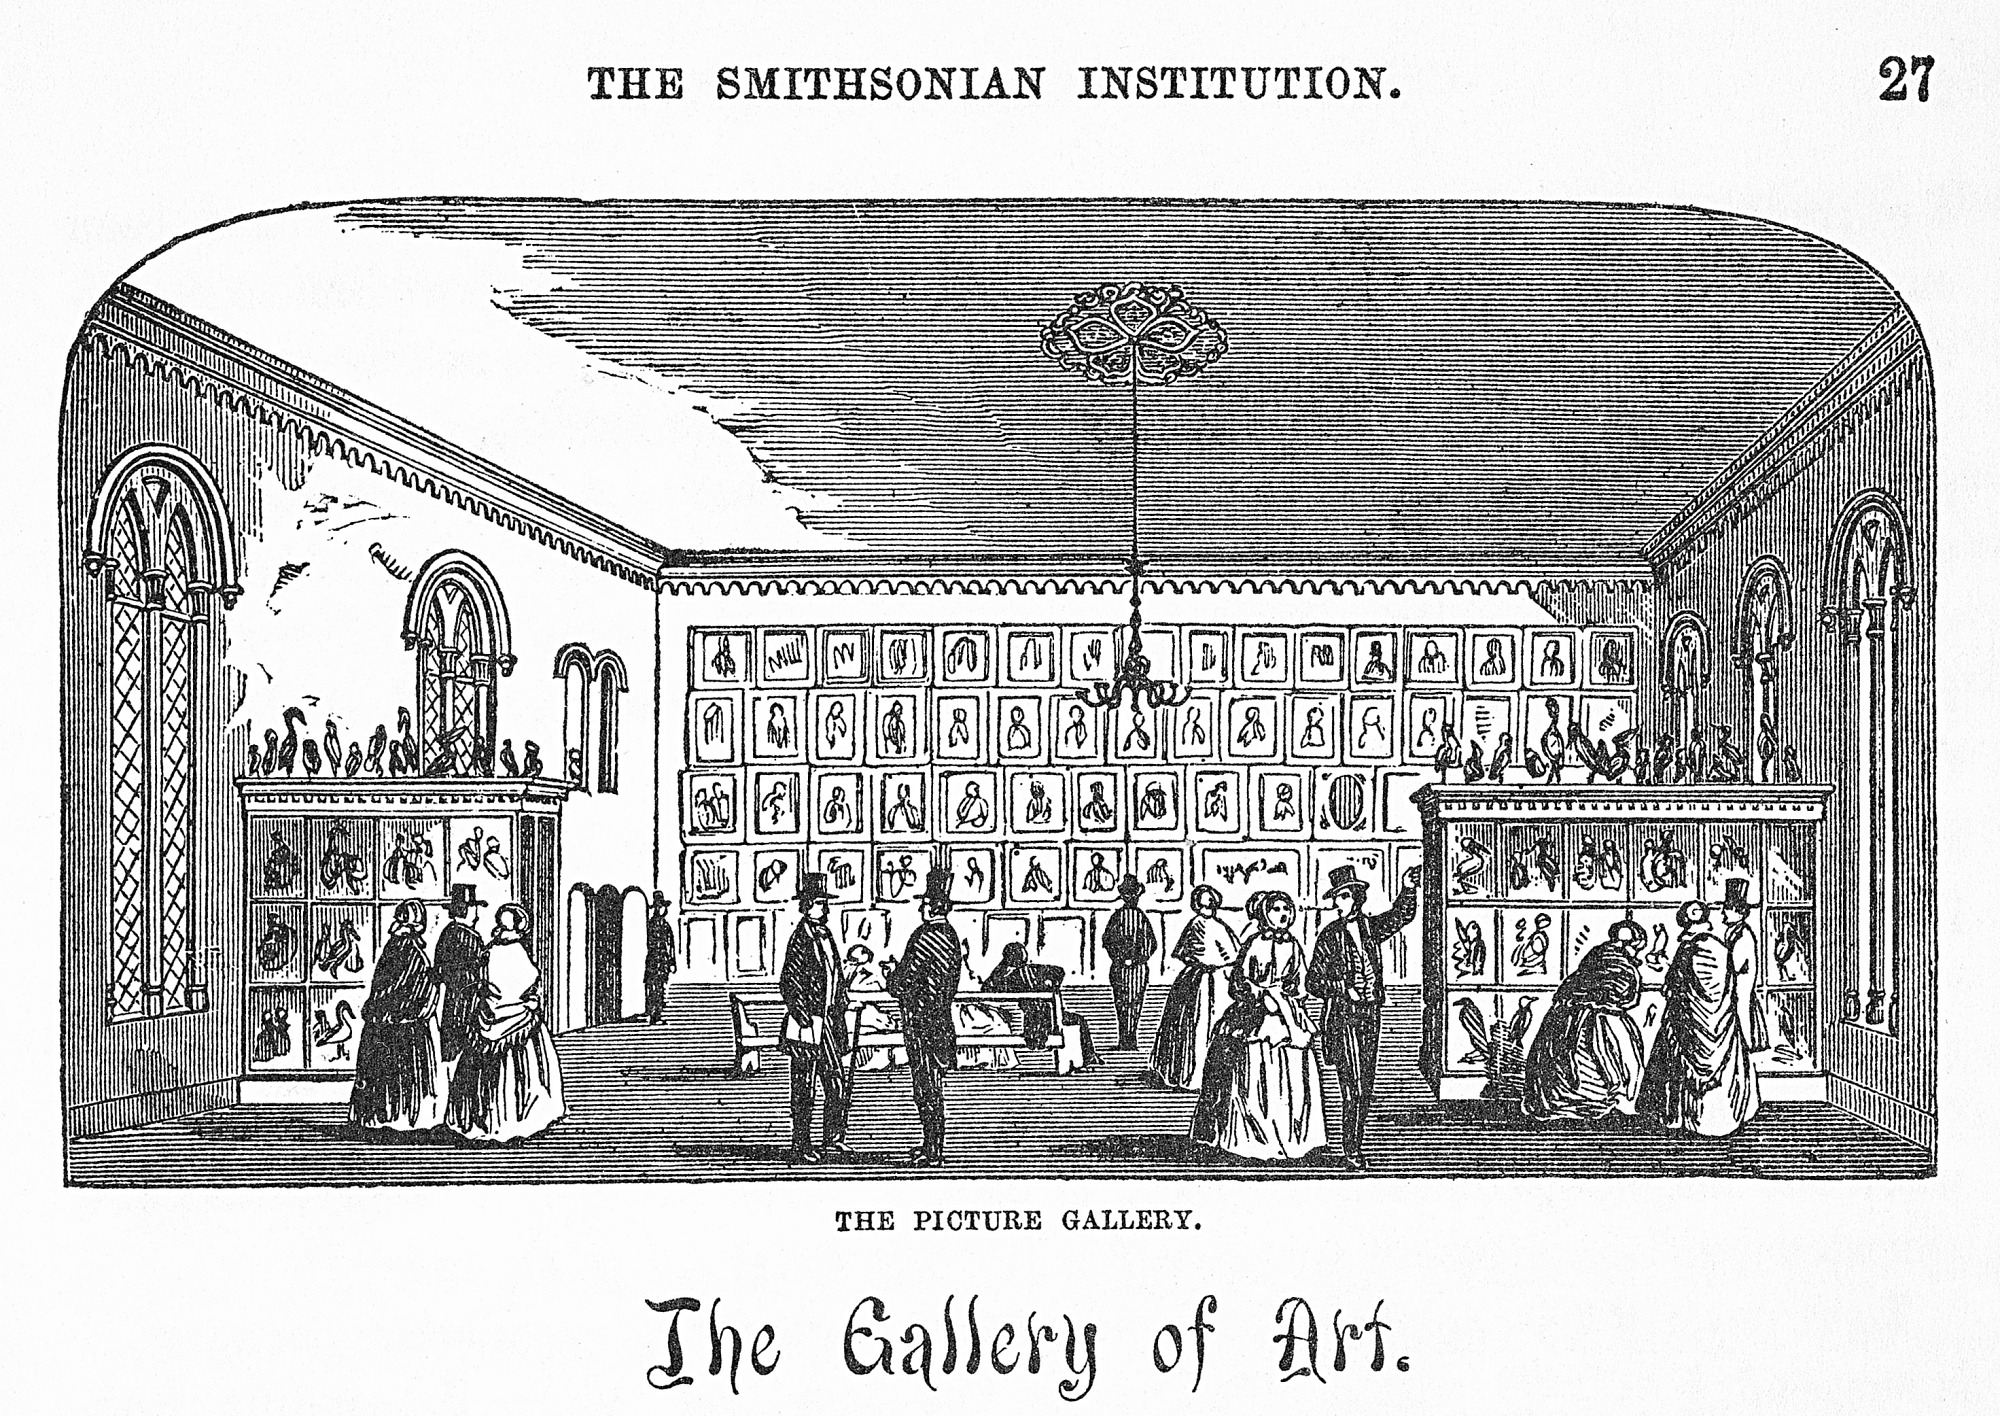 Gallery of Art in the Smithsonian Institution Building